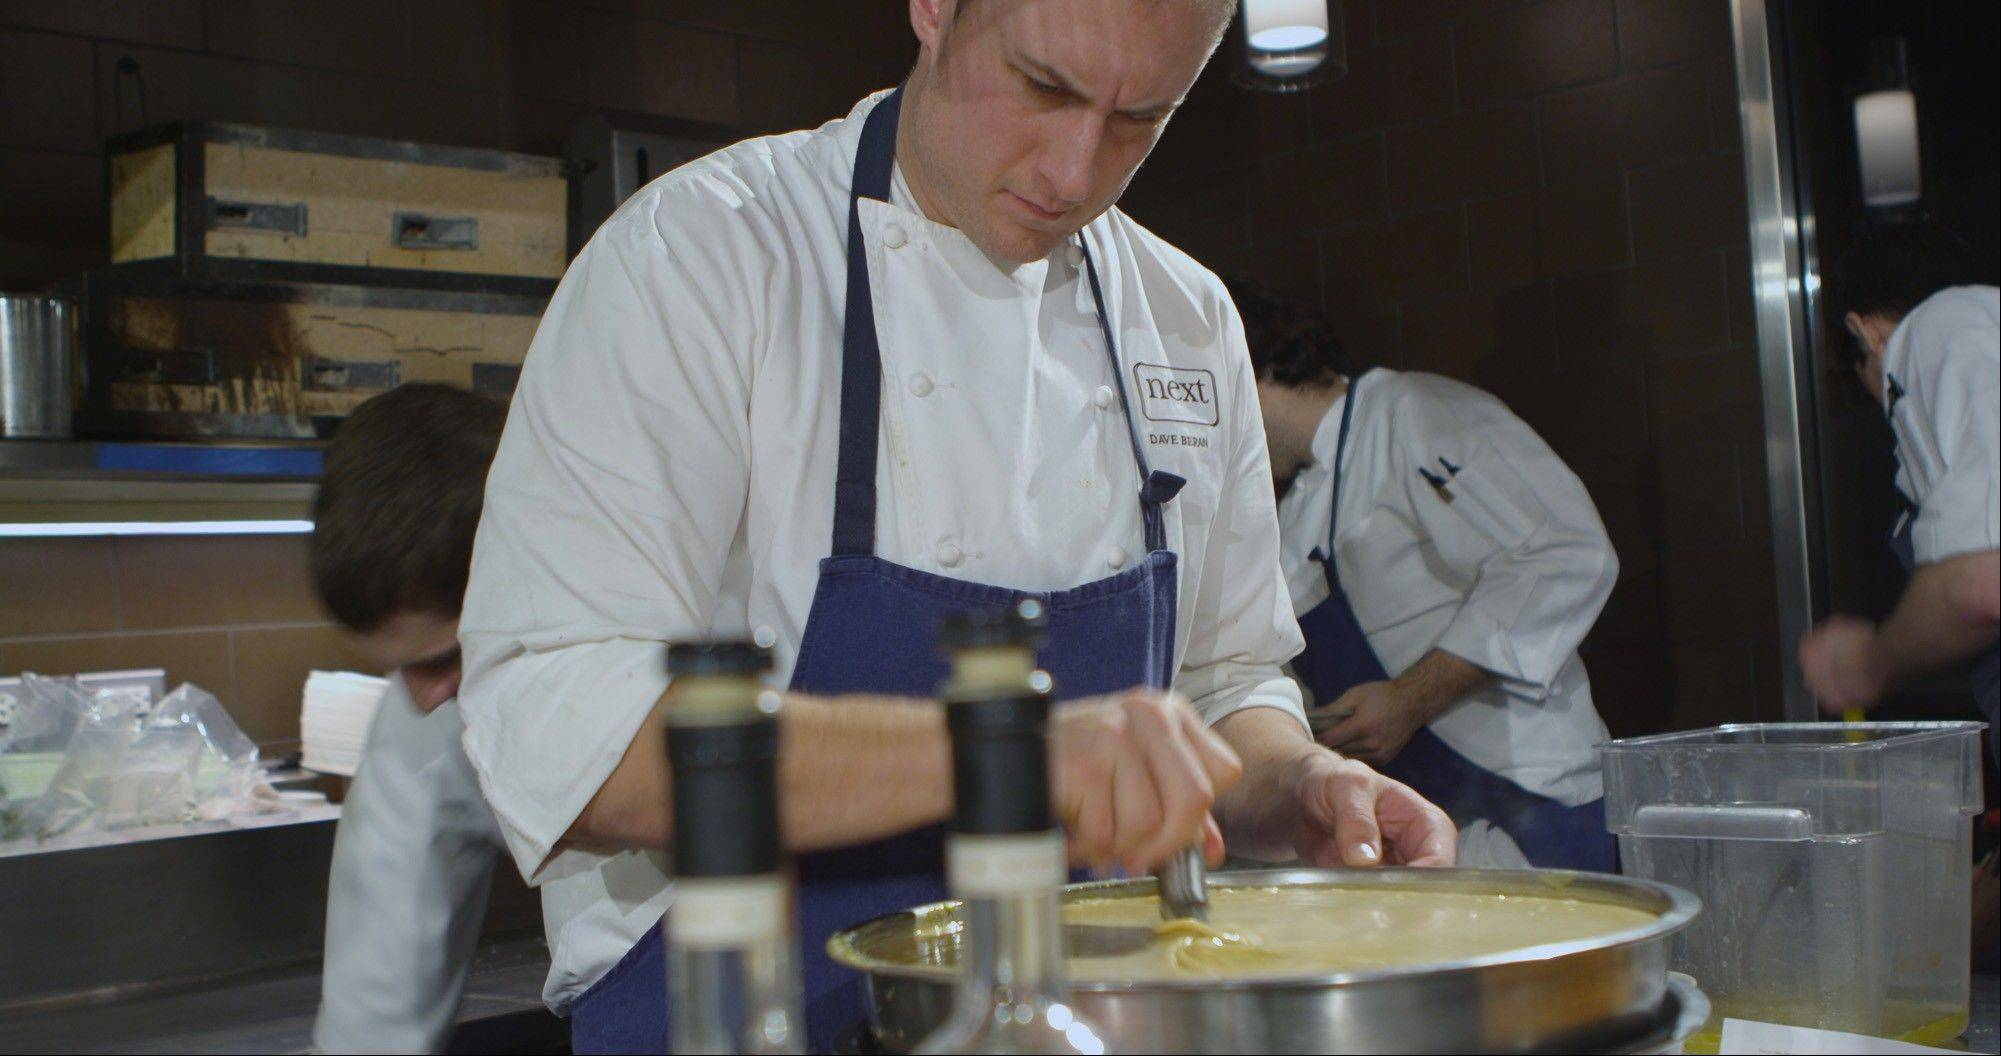 Dave Beran, Next's Hunt chef, helped conceive the game-focued menu.